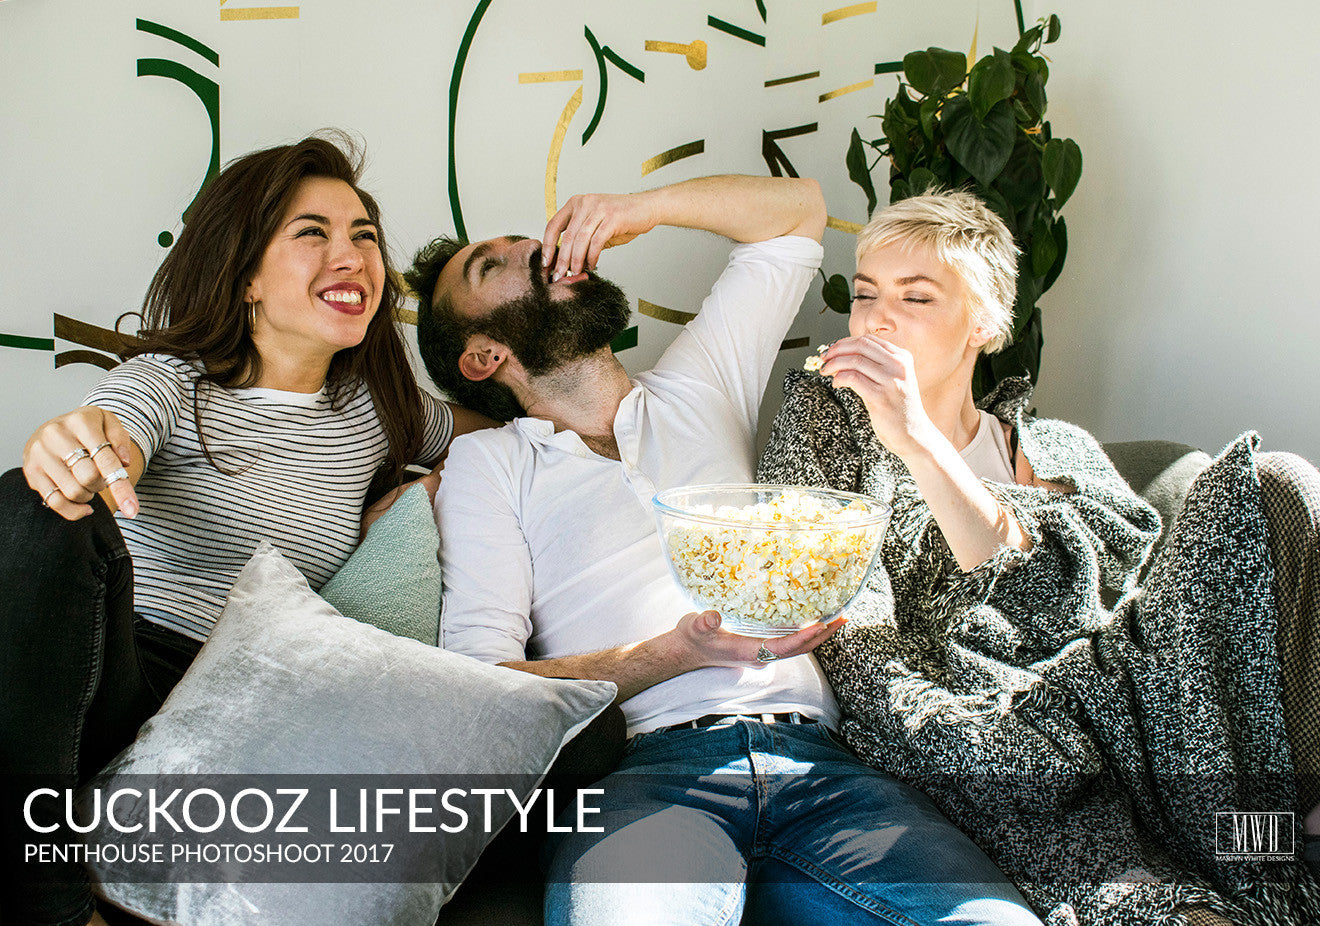 Cuckooz long stay serviced apartments London eating popcorn